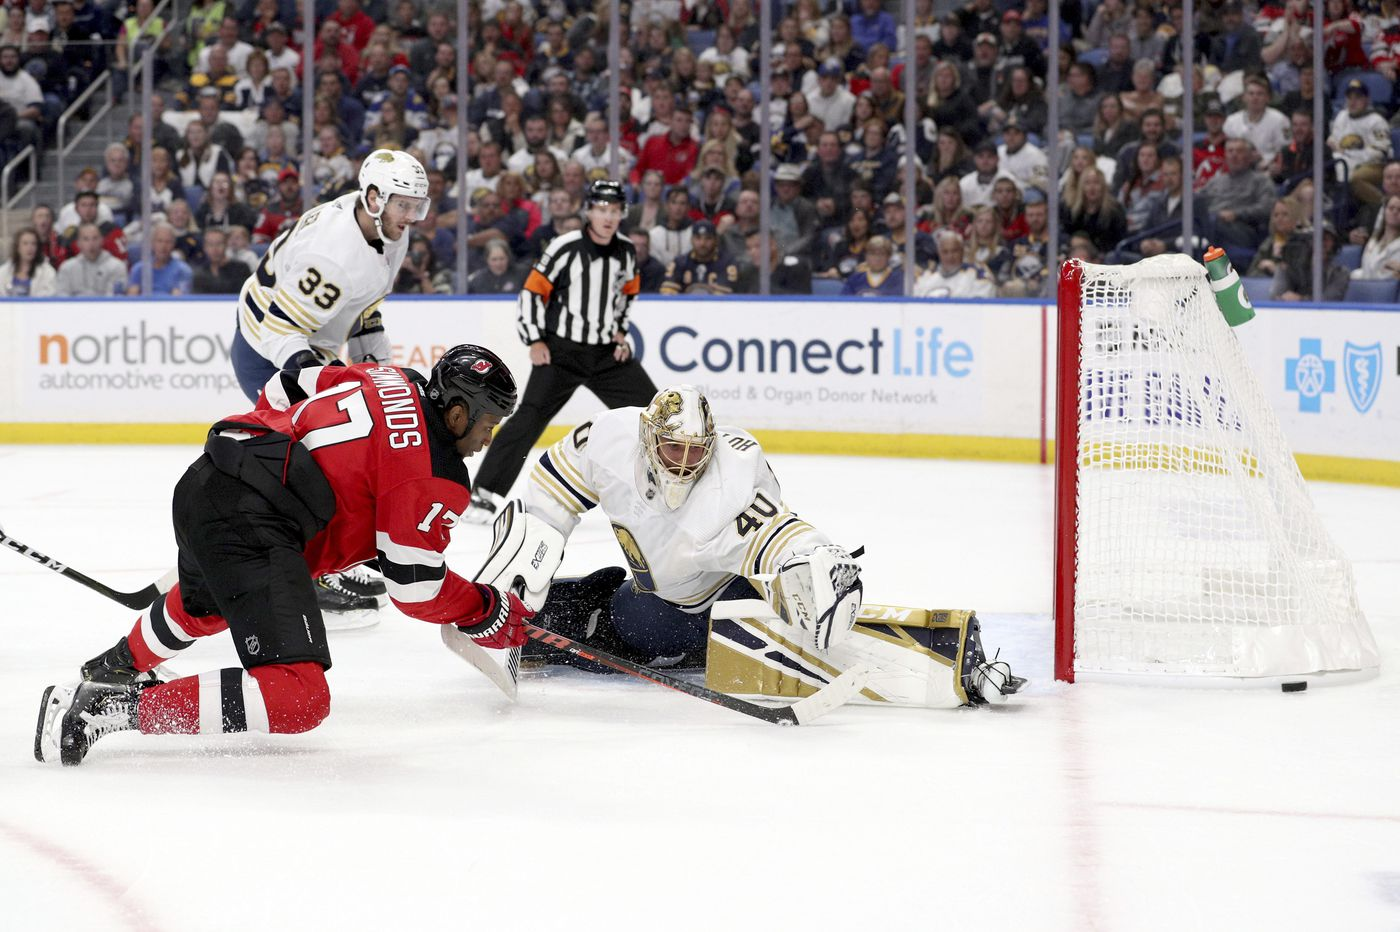 Flyers face Wayne Simmonds and the New Jersey Devils in home opener